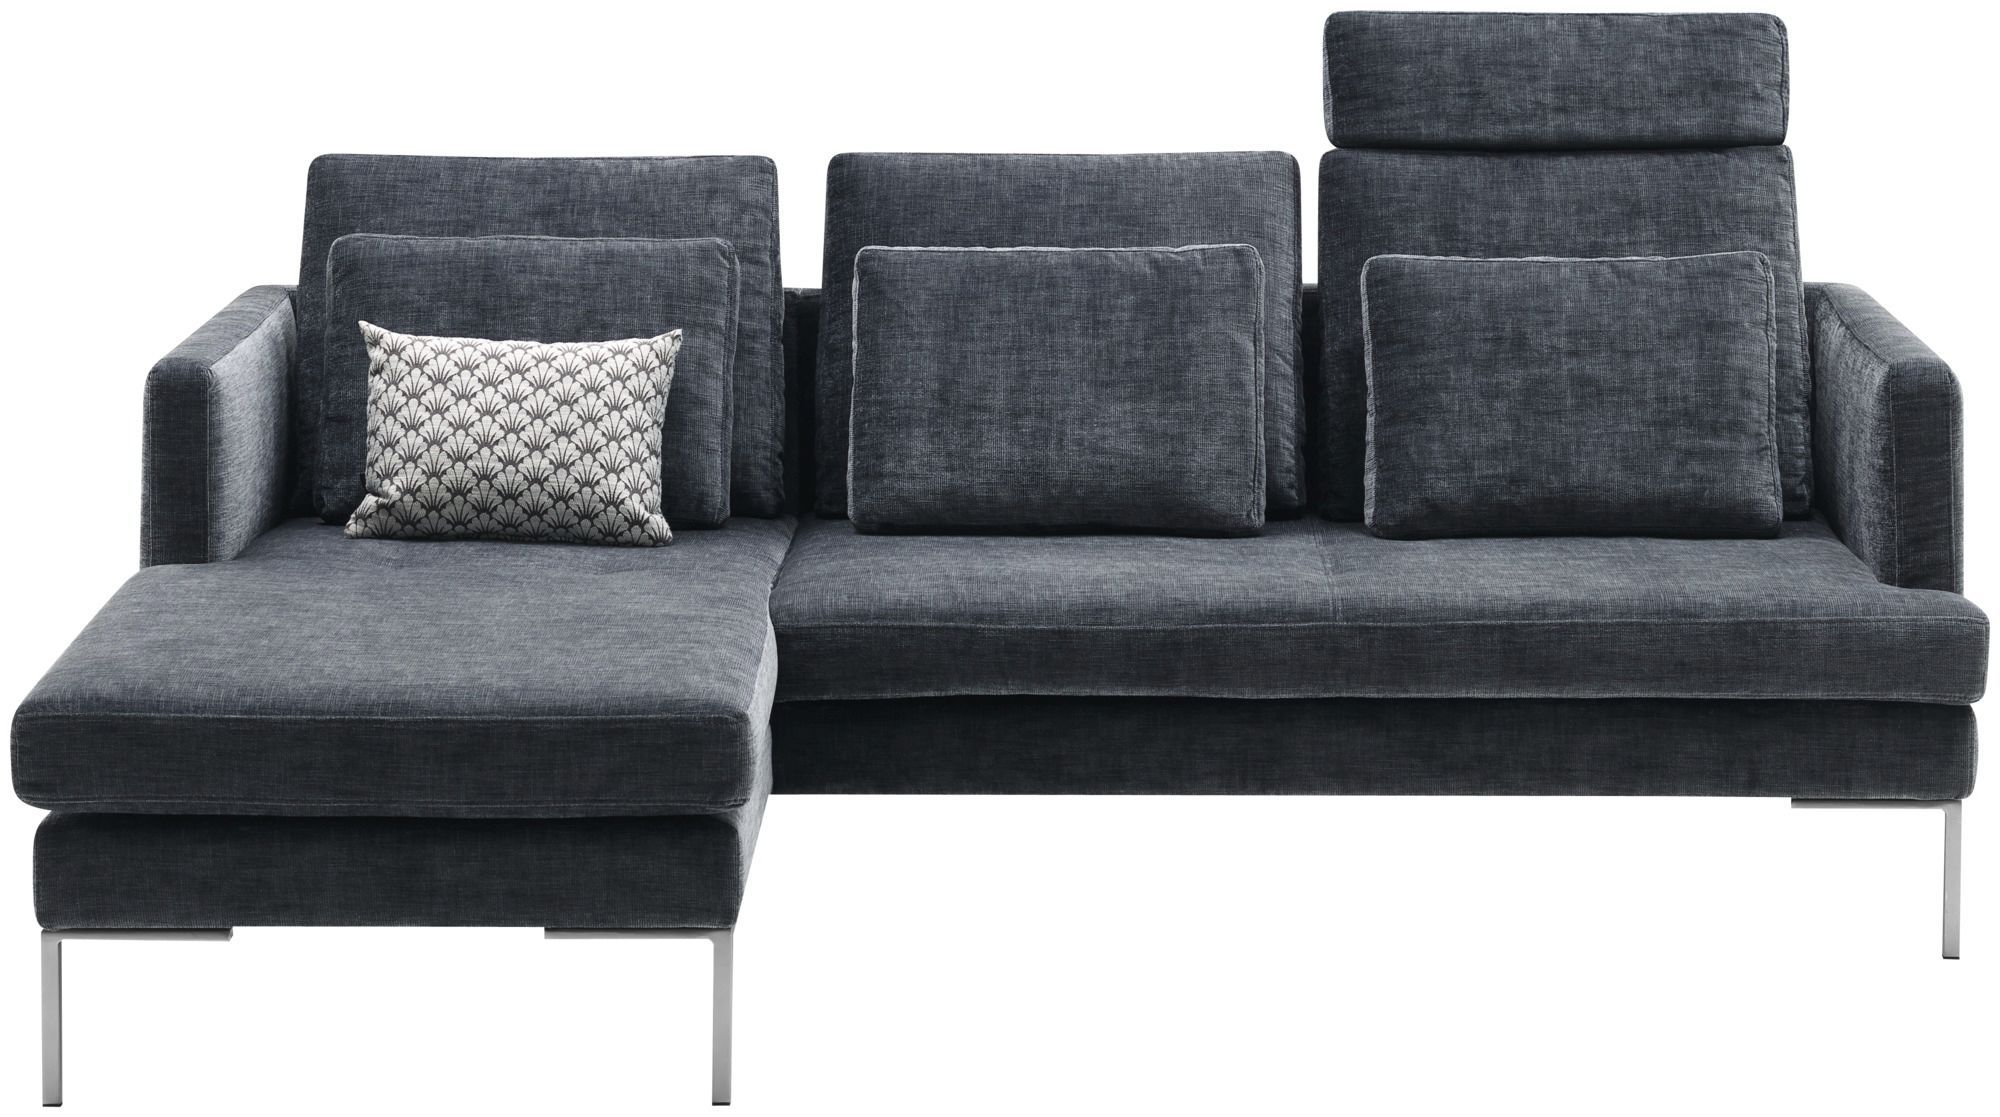 Boconcept Sofa Corner Sofa Contemporary Leather Fabric